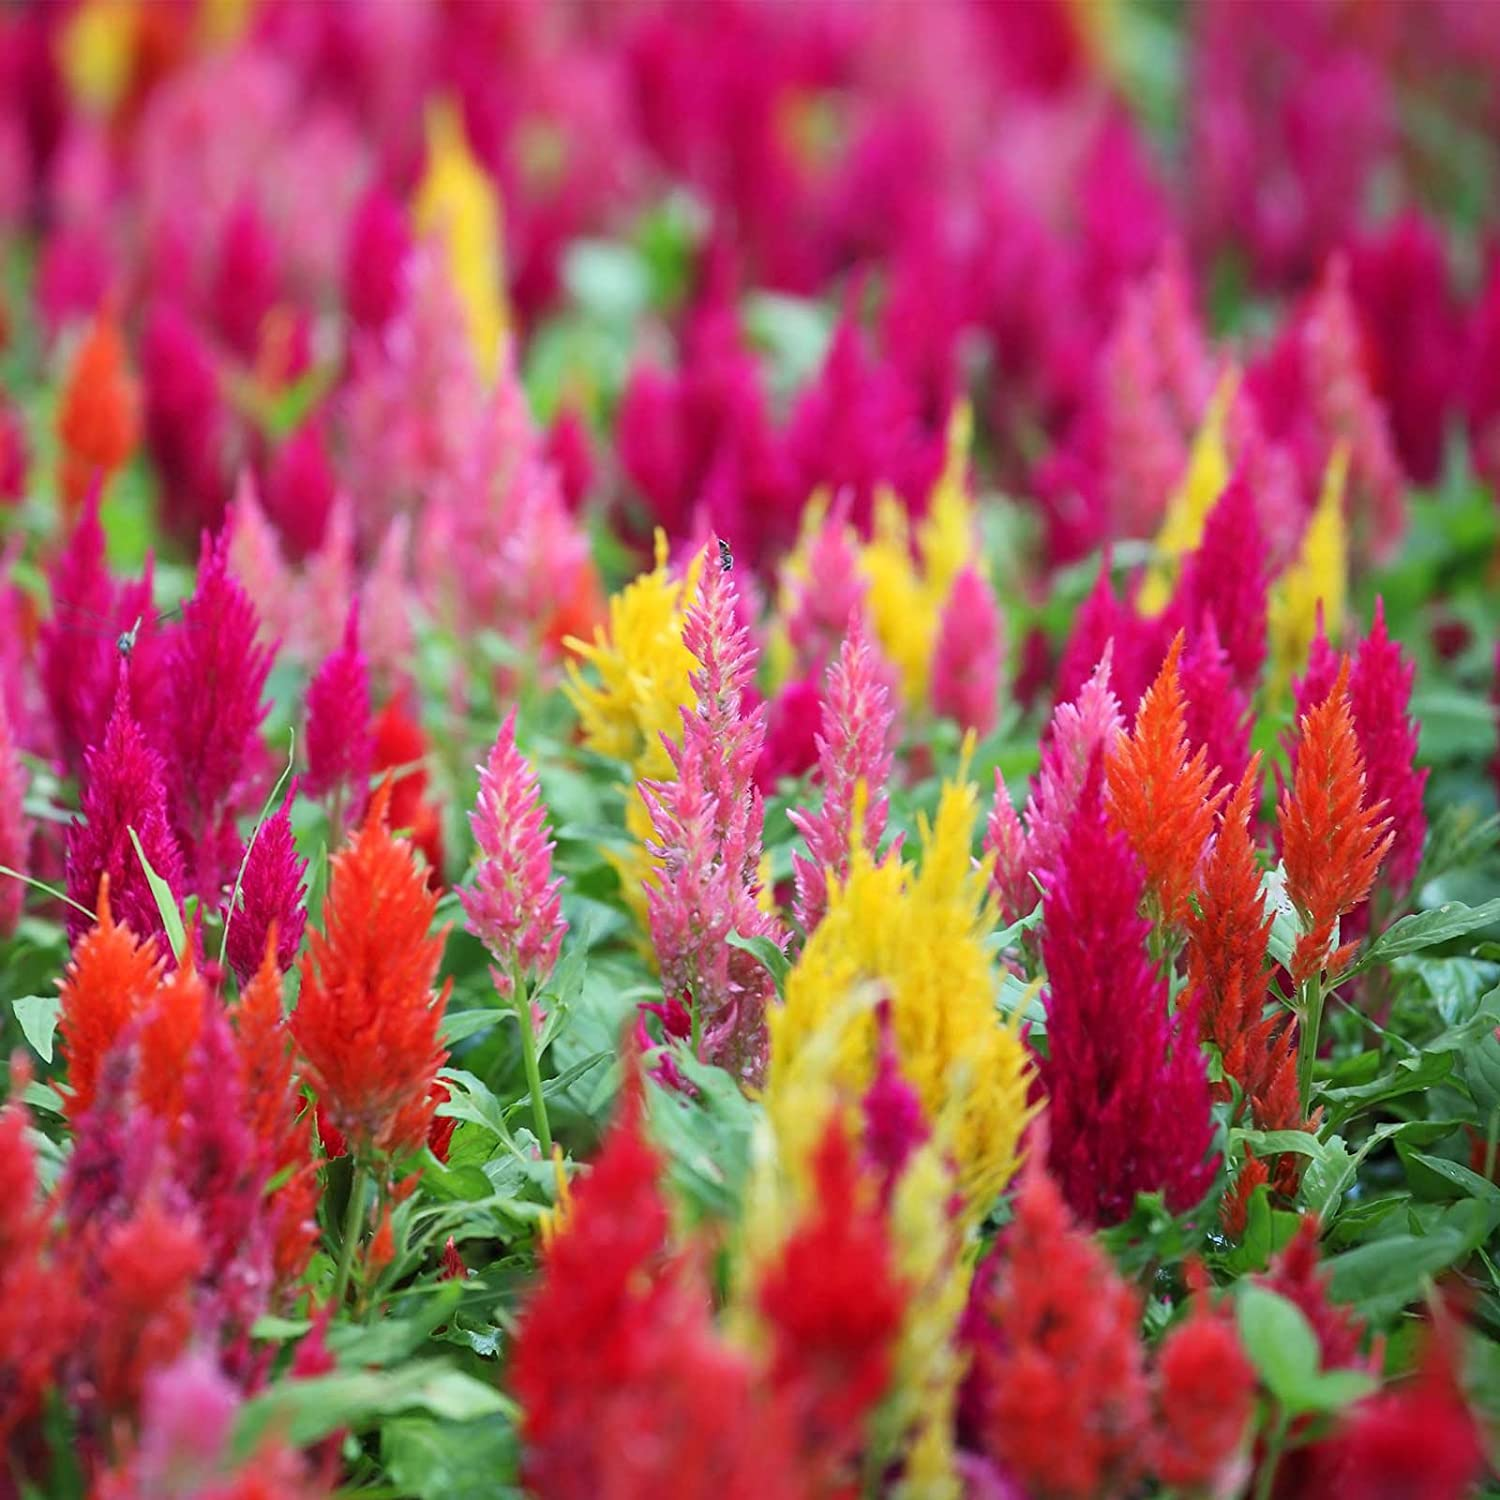 Plumed Castle Celosia Seeds - 1000 Seeds - Multi Color Mix - Annual Flower Gardening Seeds - Celosia plumosa